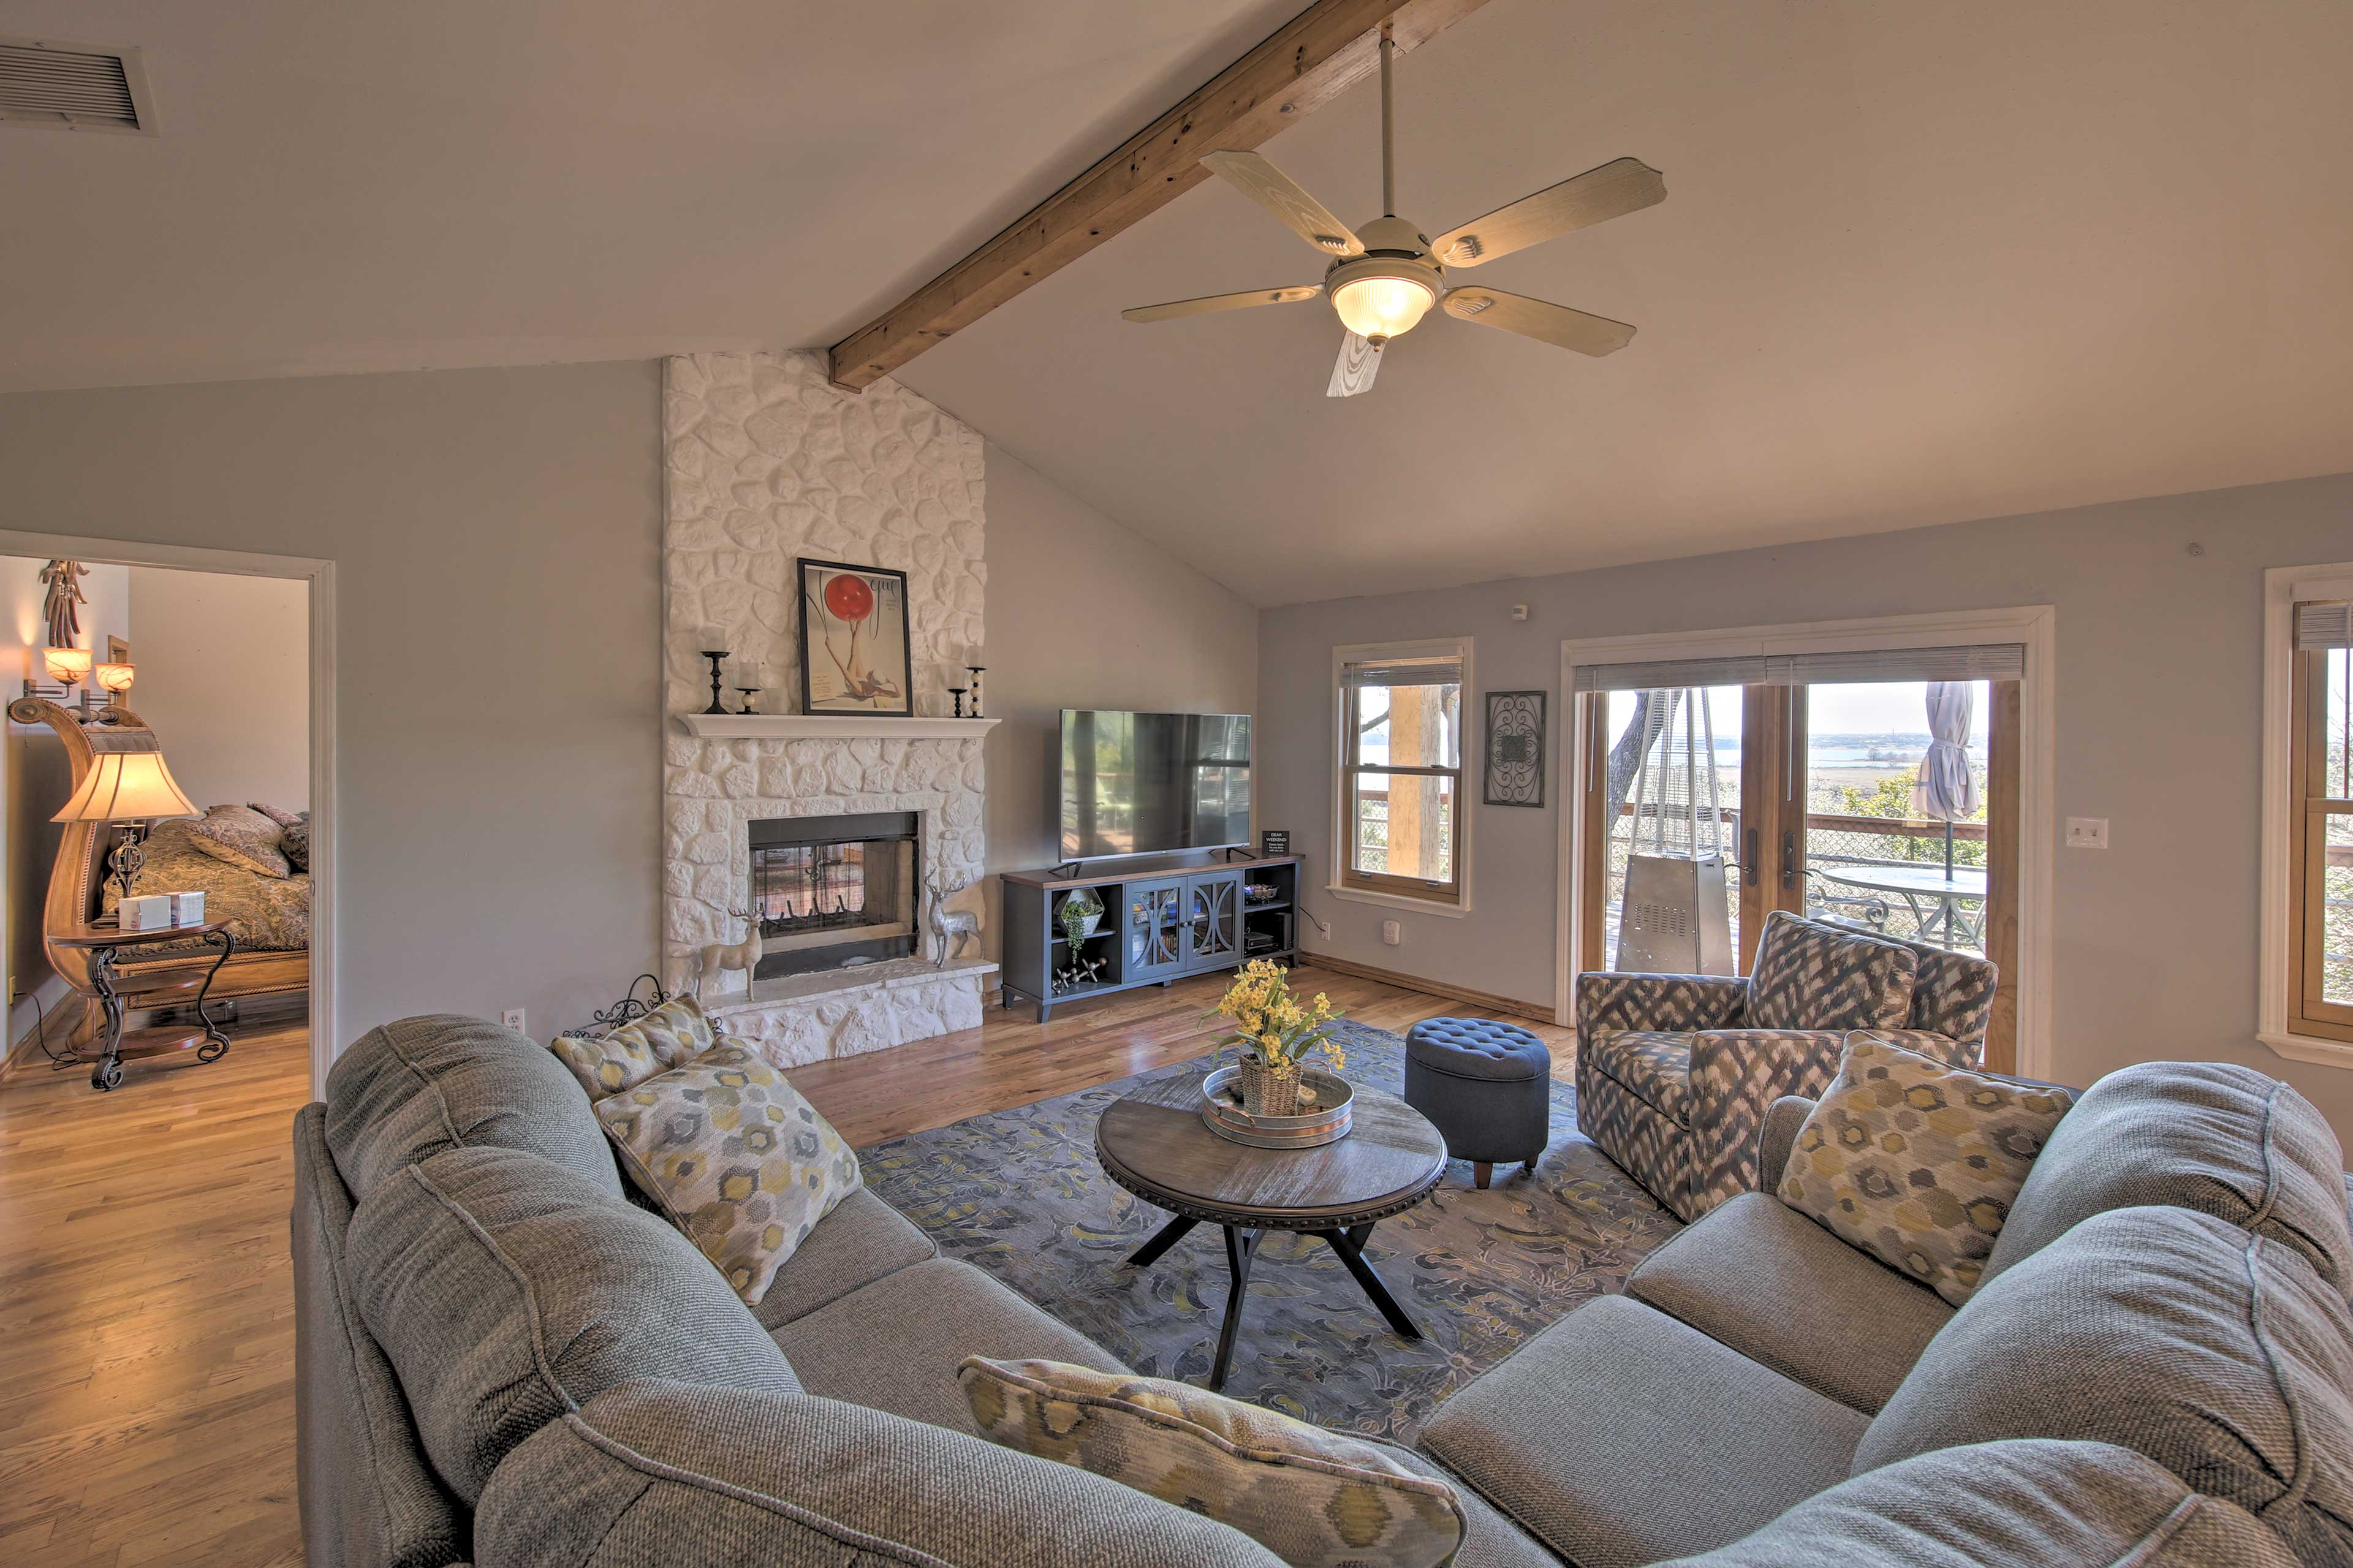 Gather with family and friends in the living room.